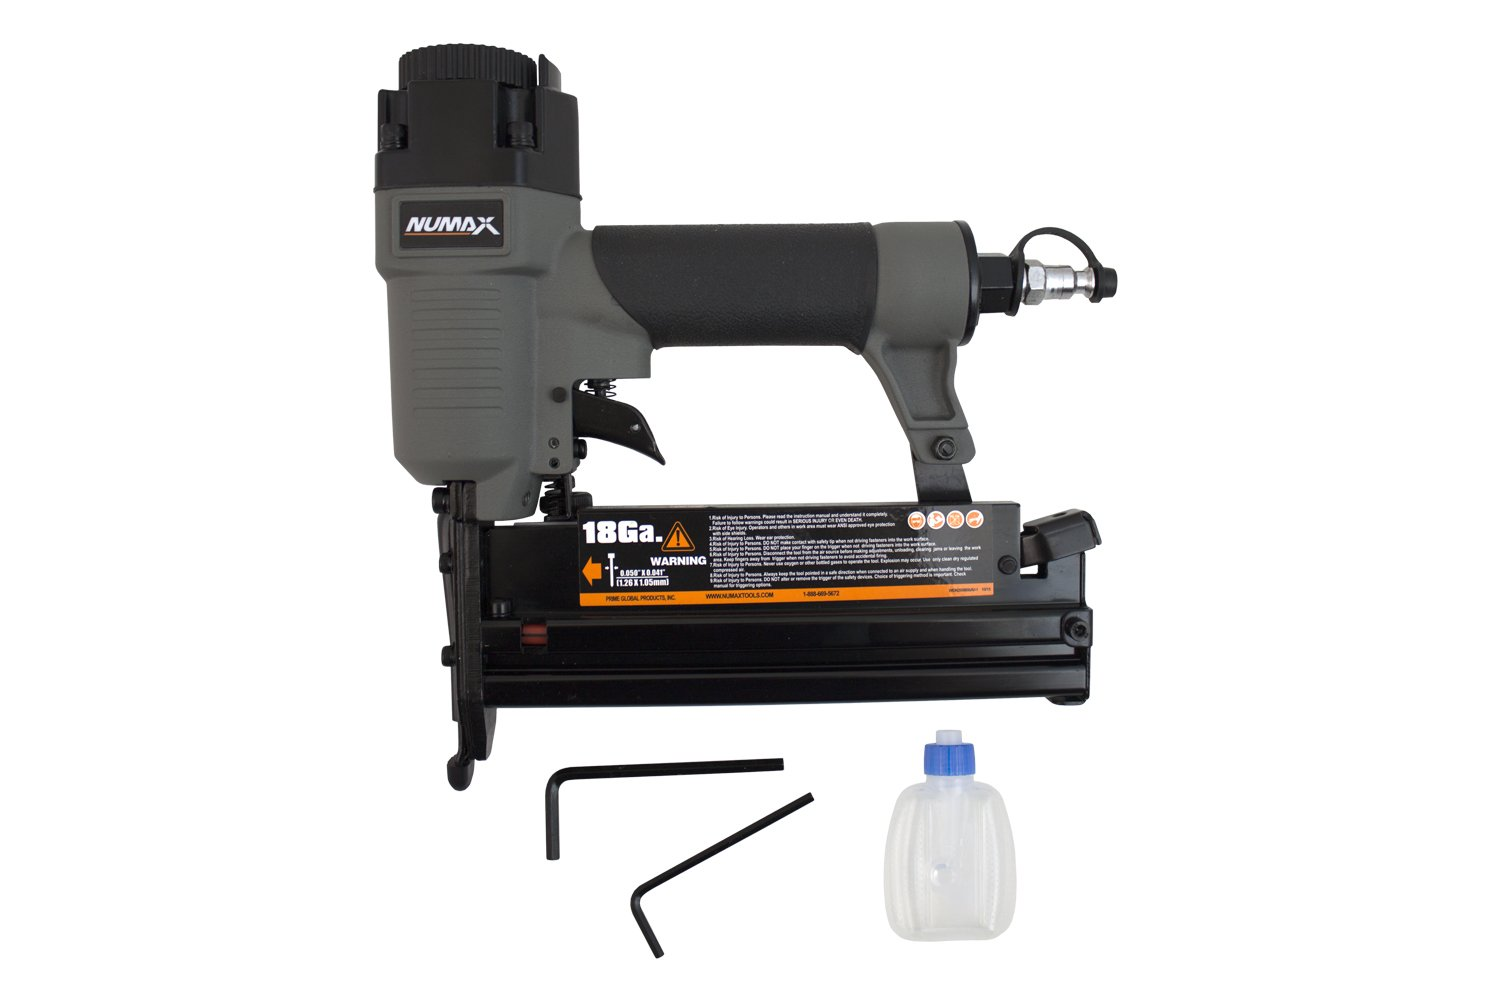 NuMax SL31 18 & 16 Gauge Pneumatic 3-in-1 Nailer & Stapler, Gray & Black by NuMax (Image #2)